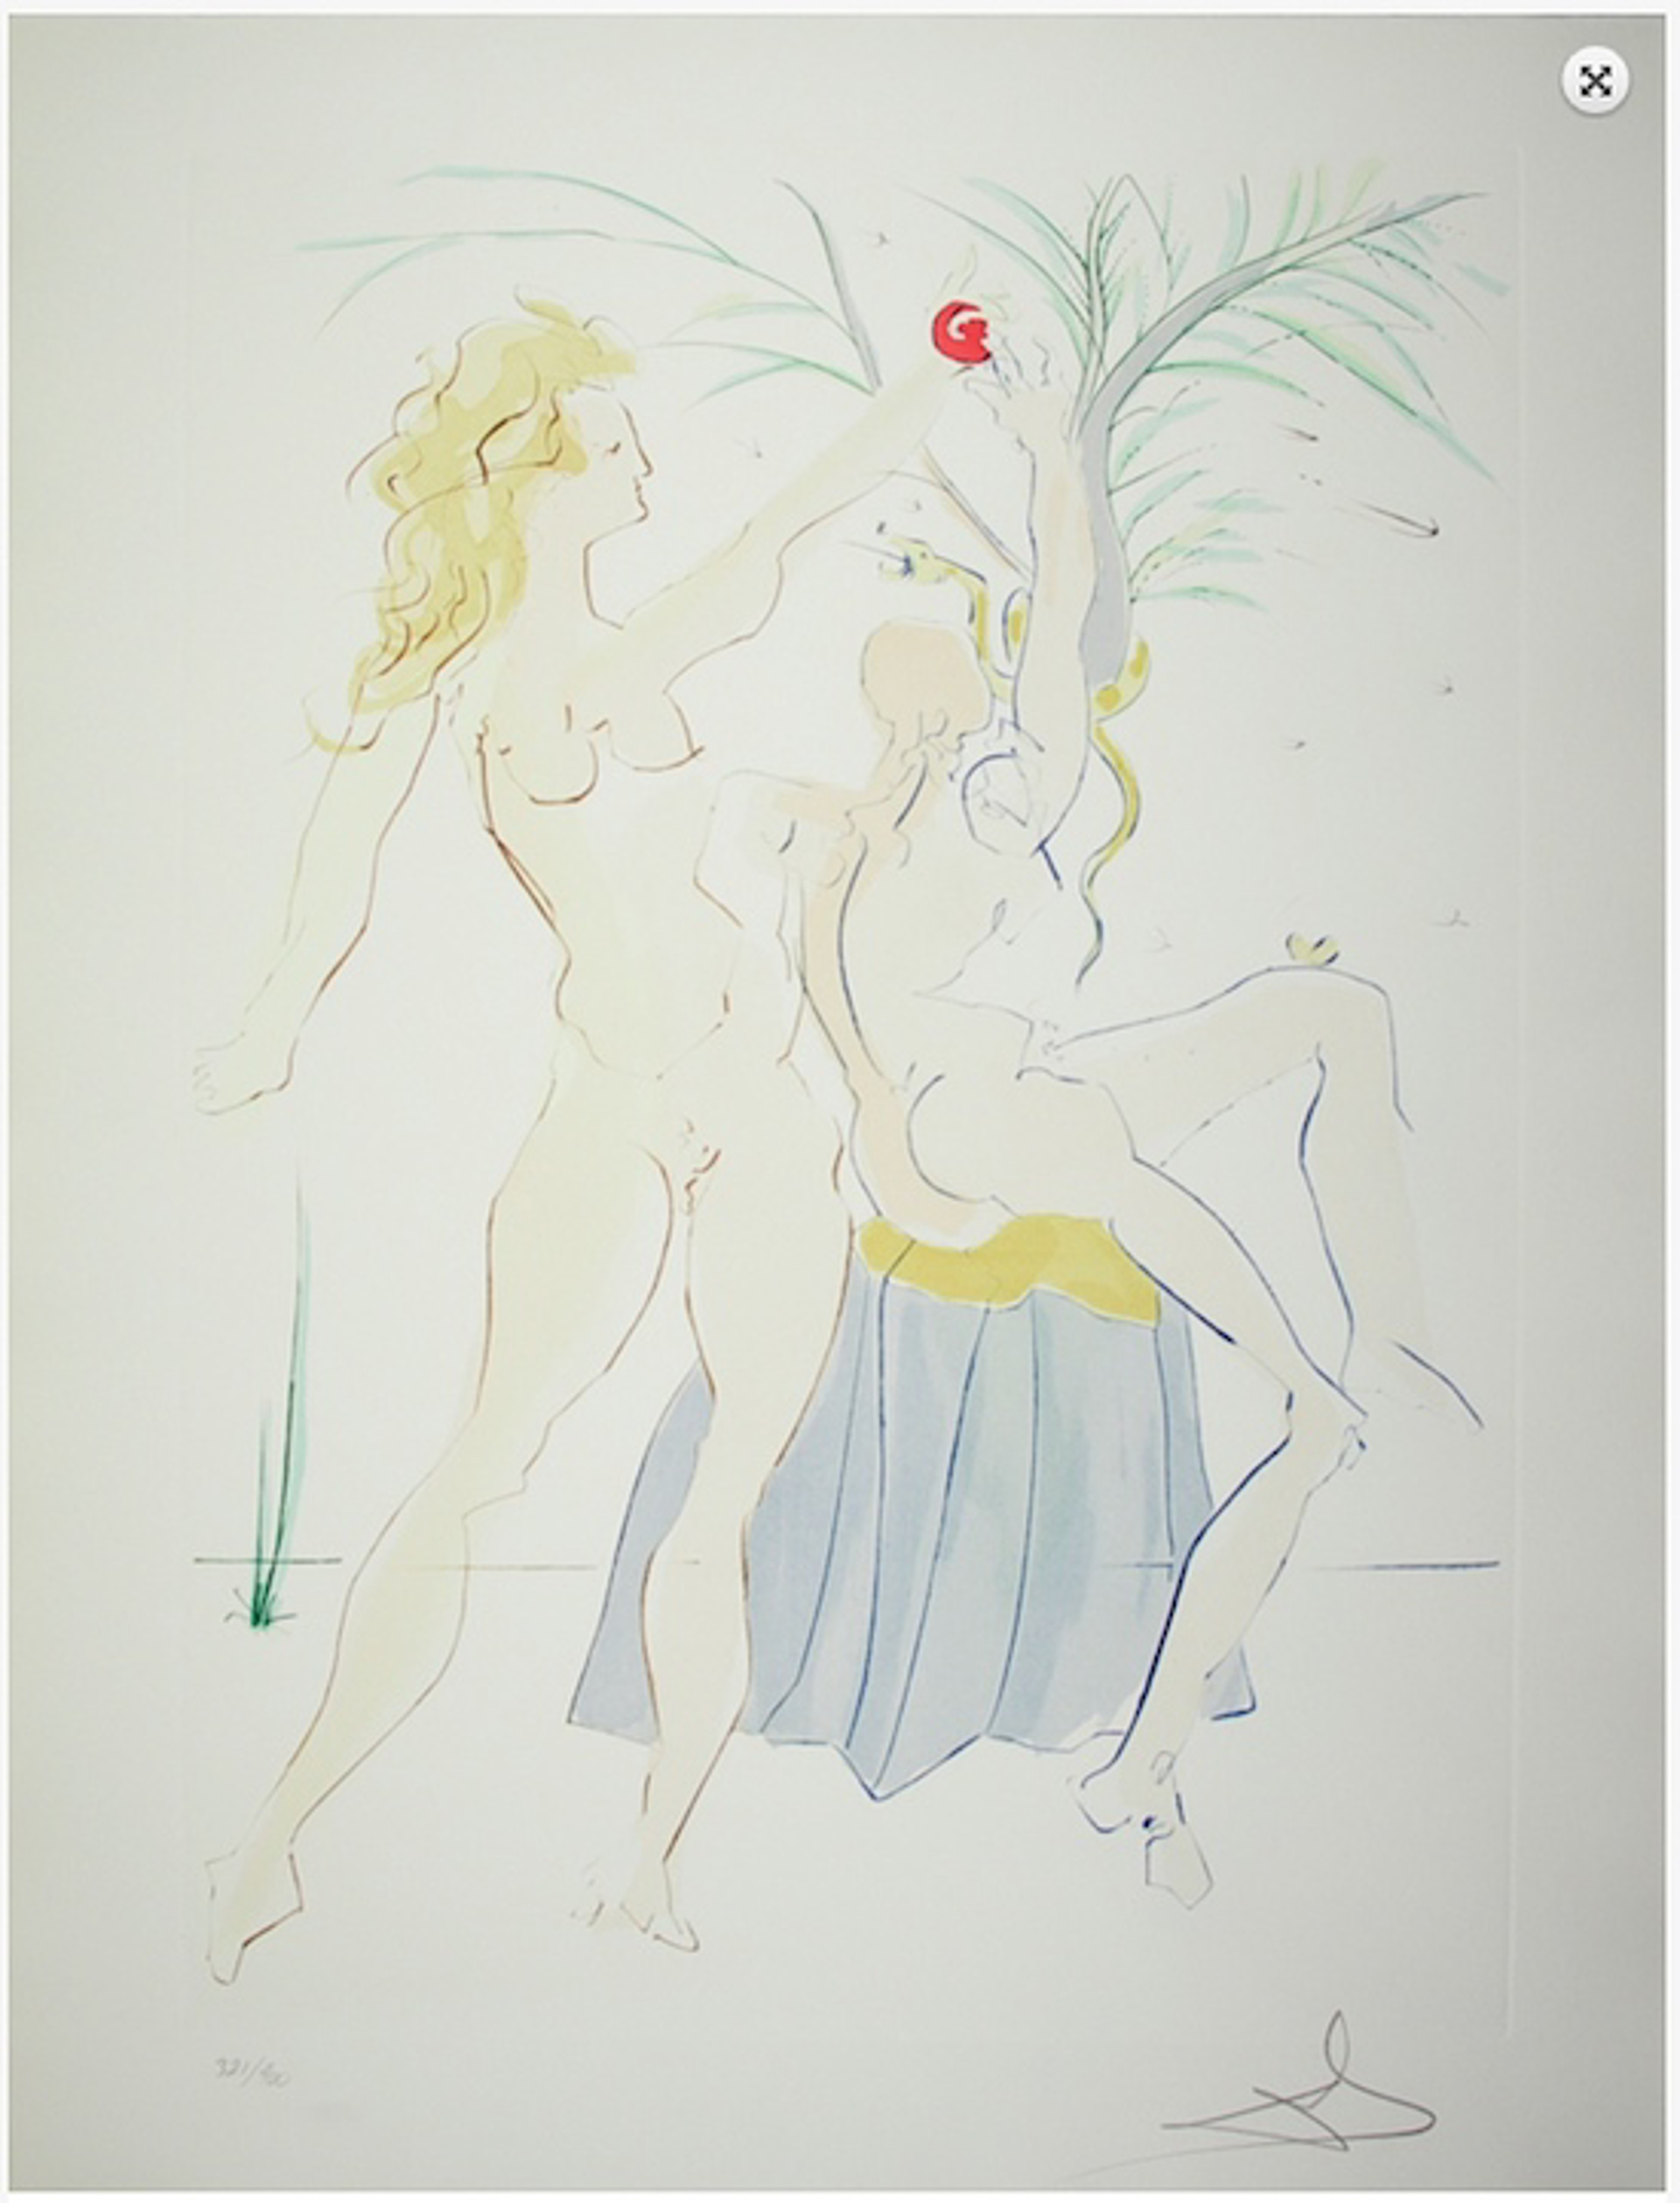 Adam and Eve (from Our Historical Heritage, suite of 11 works) by Salvador Dali